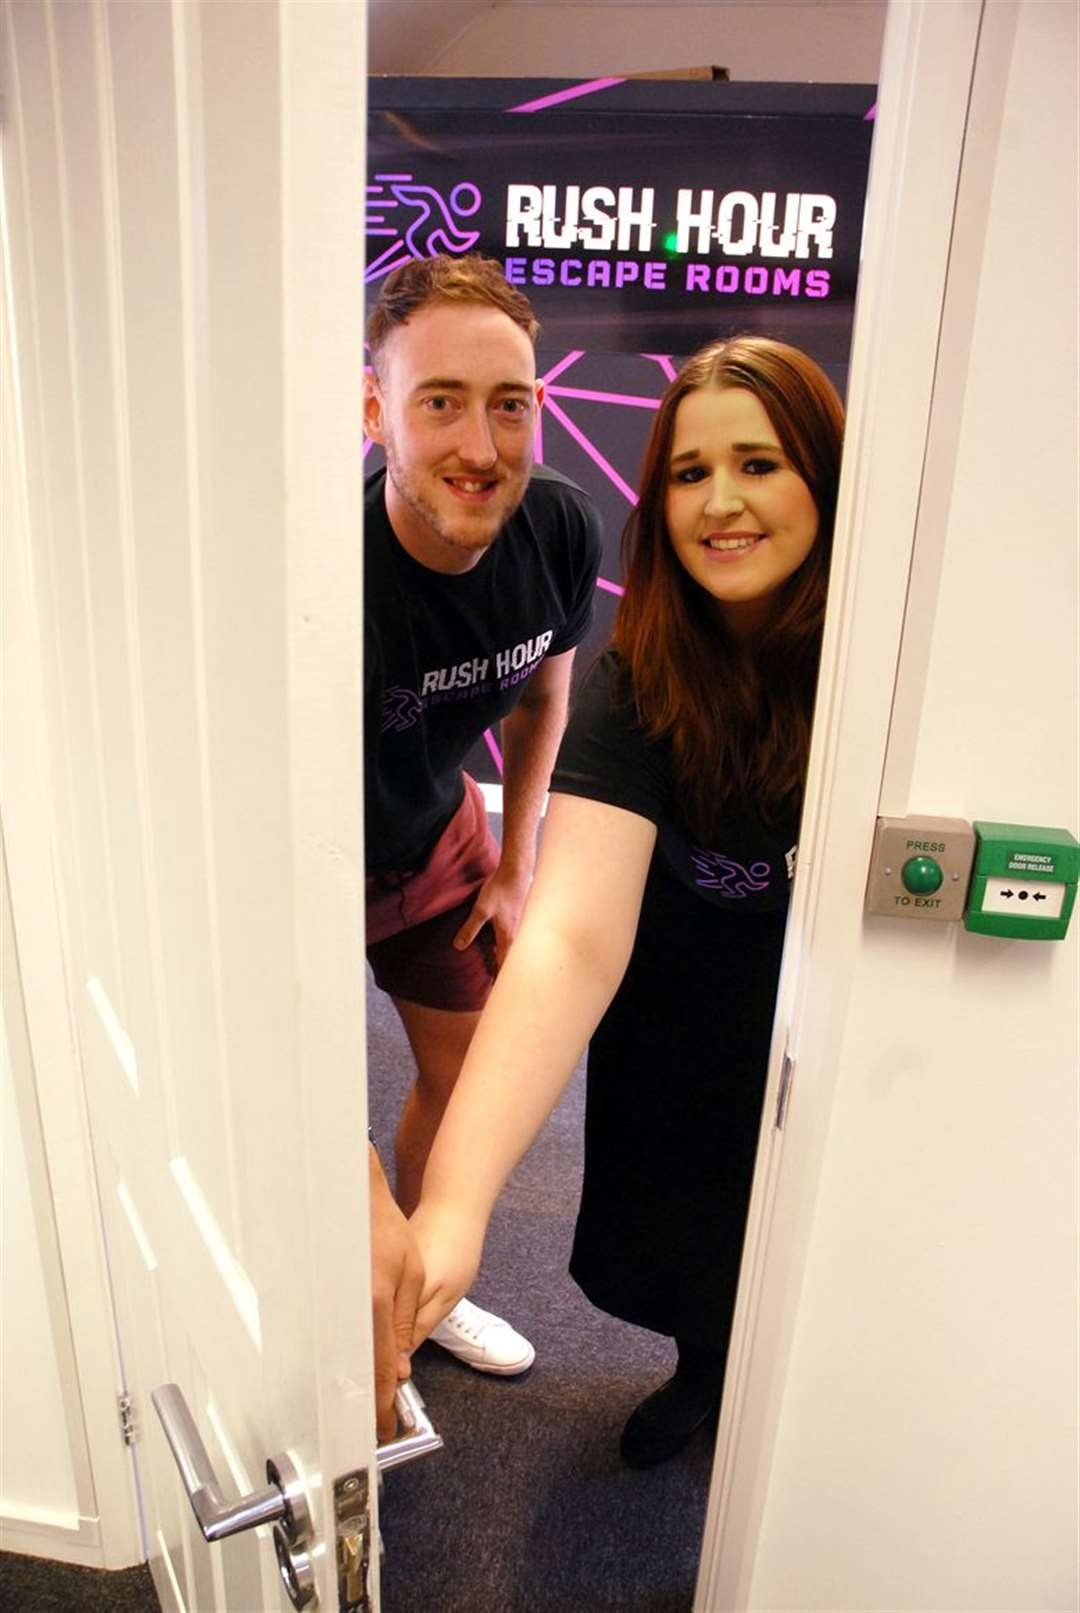 Competitors will have just an hour to crack clues and puzzles to 'escape' a themed room